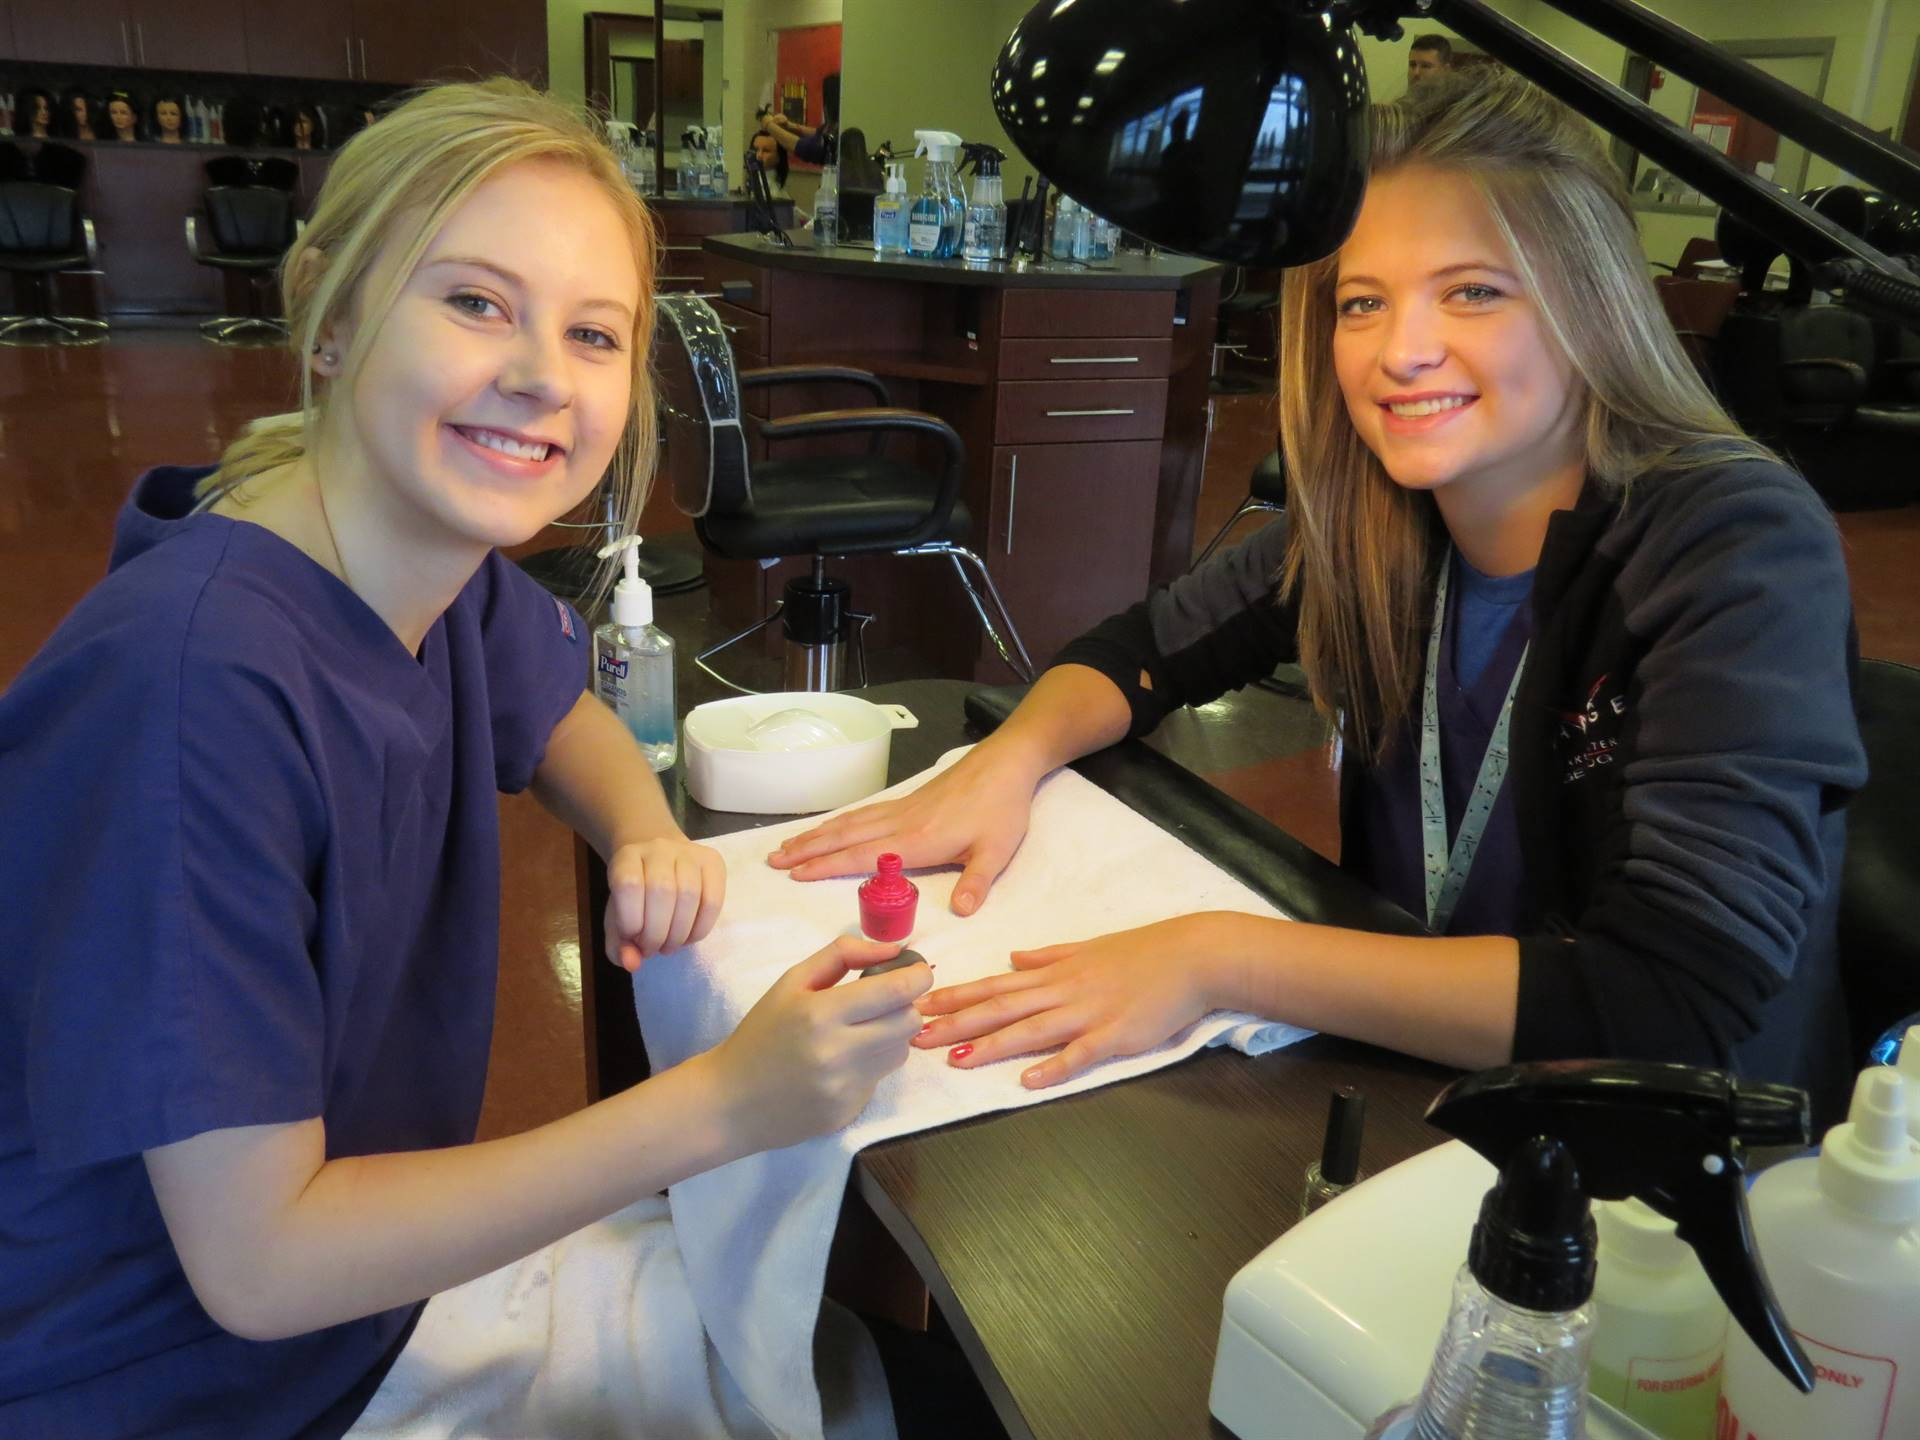 Two female cosmetology students smiling at the nail polish station